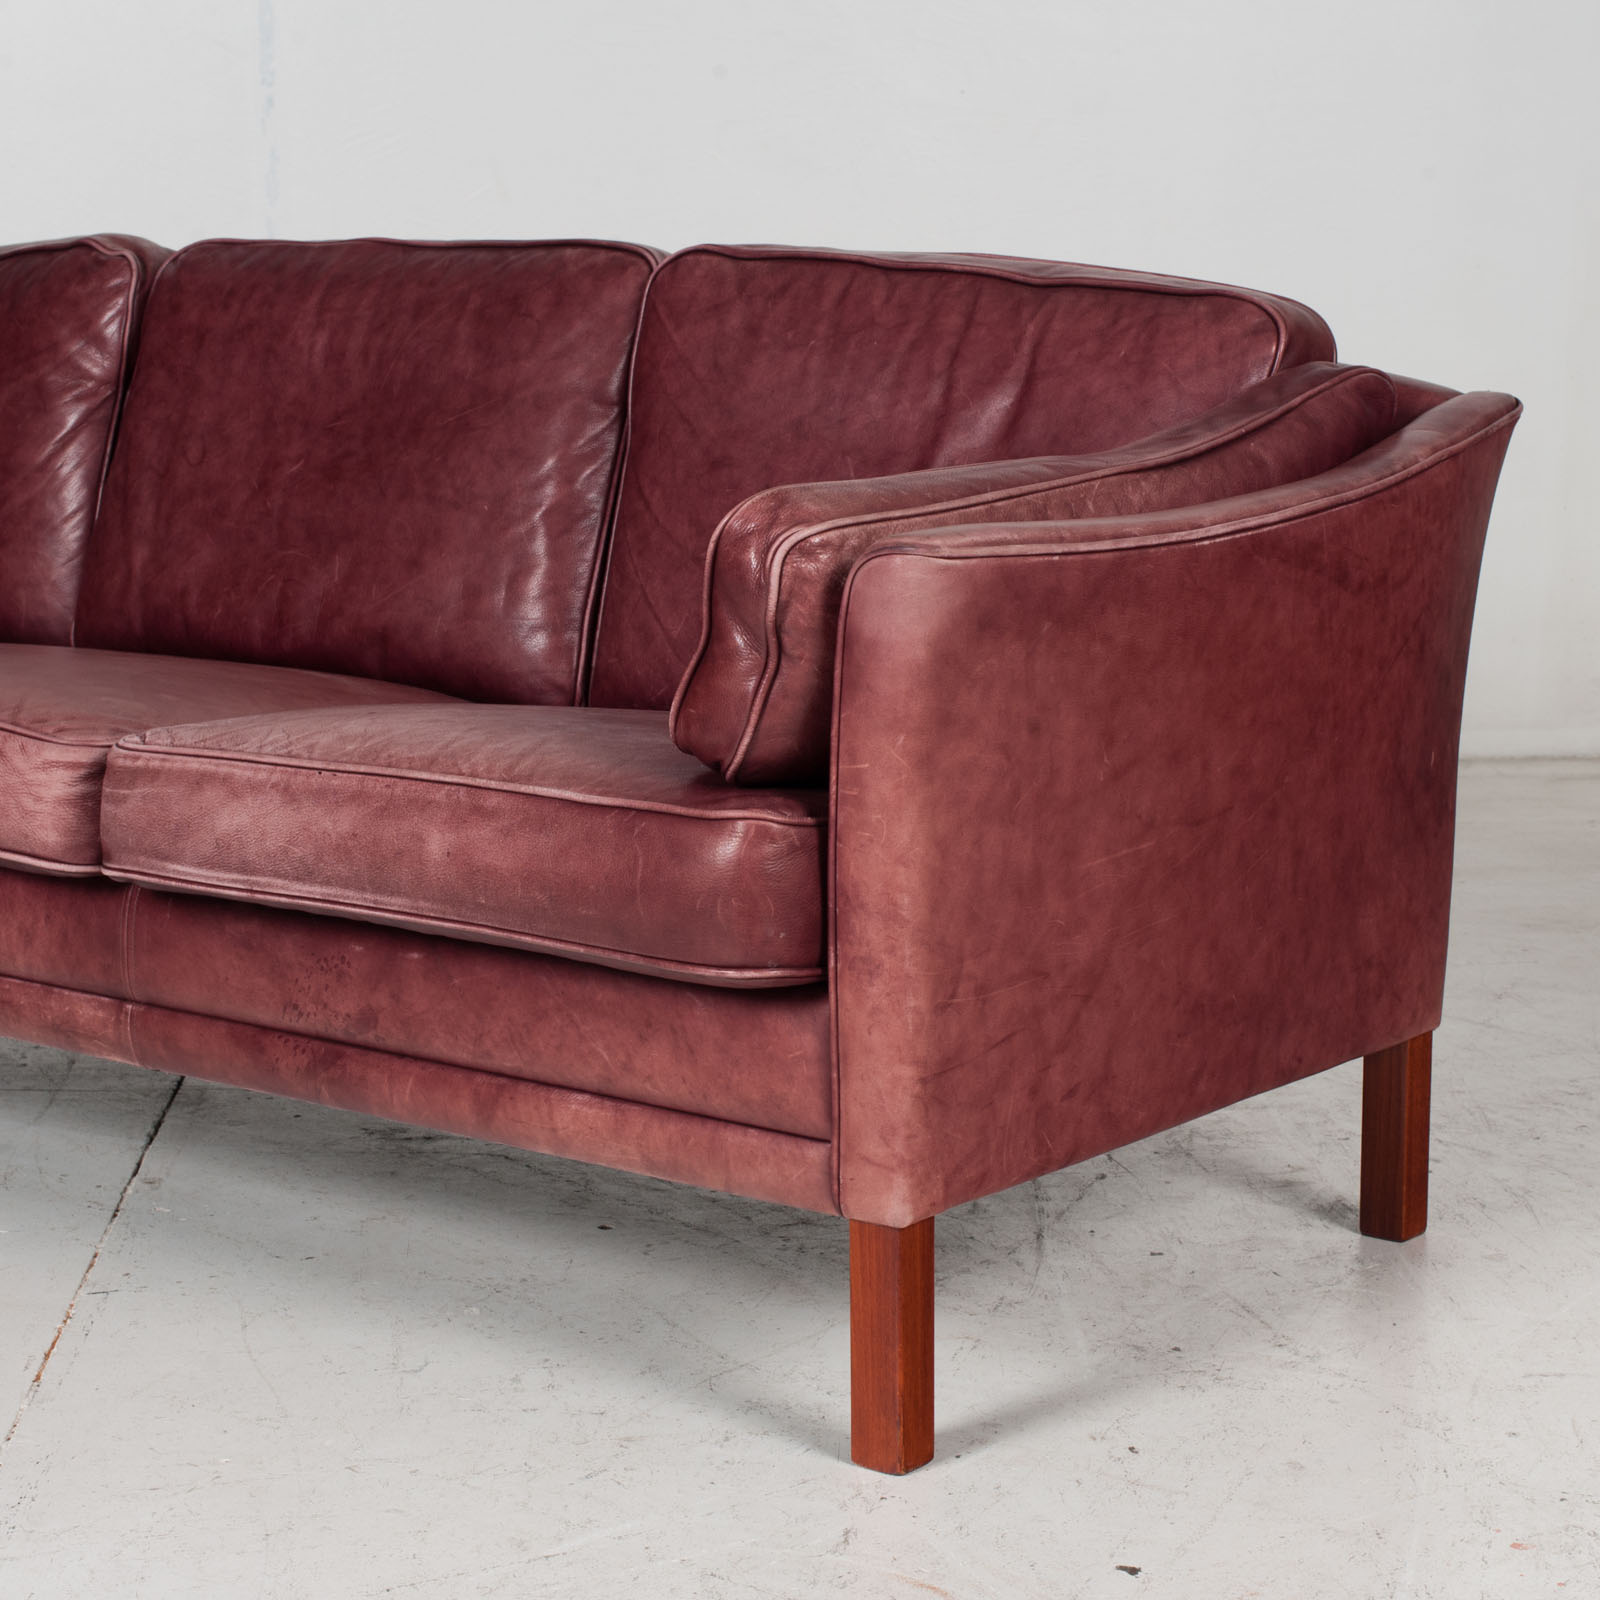 3 Seat Sofa By Mogens Hansen In Red Leather, 1960s, Denmark 6